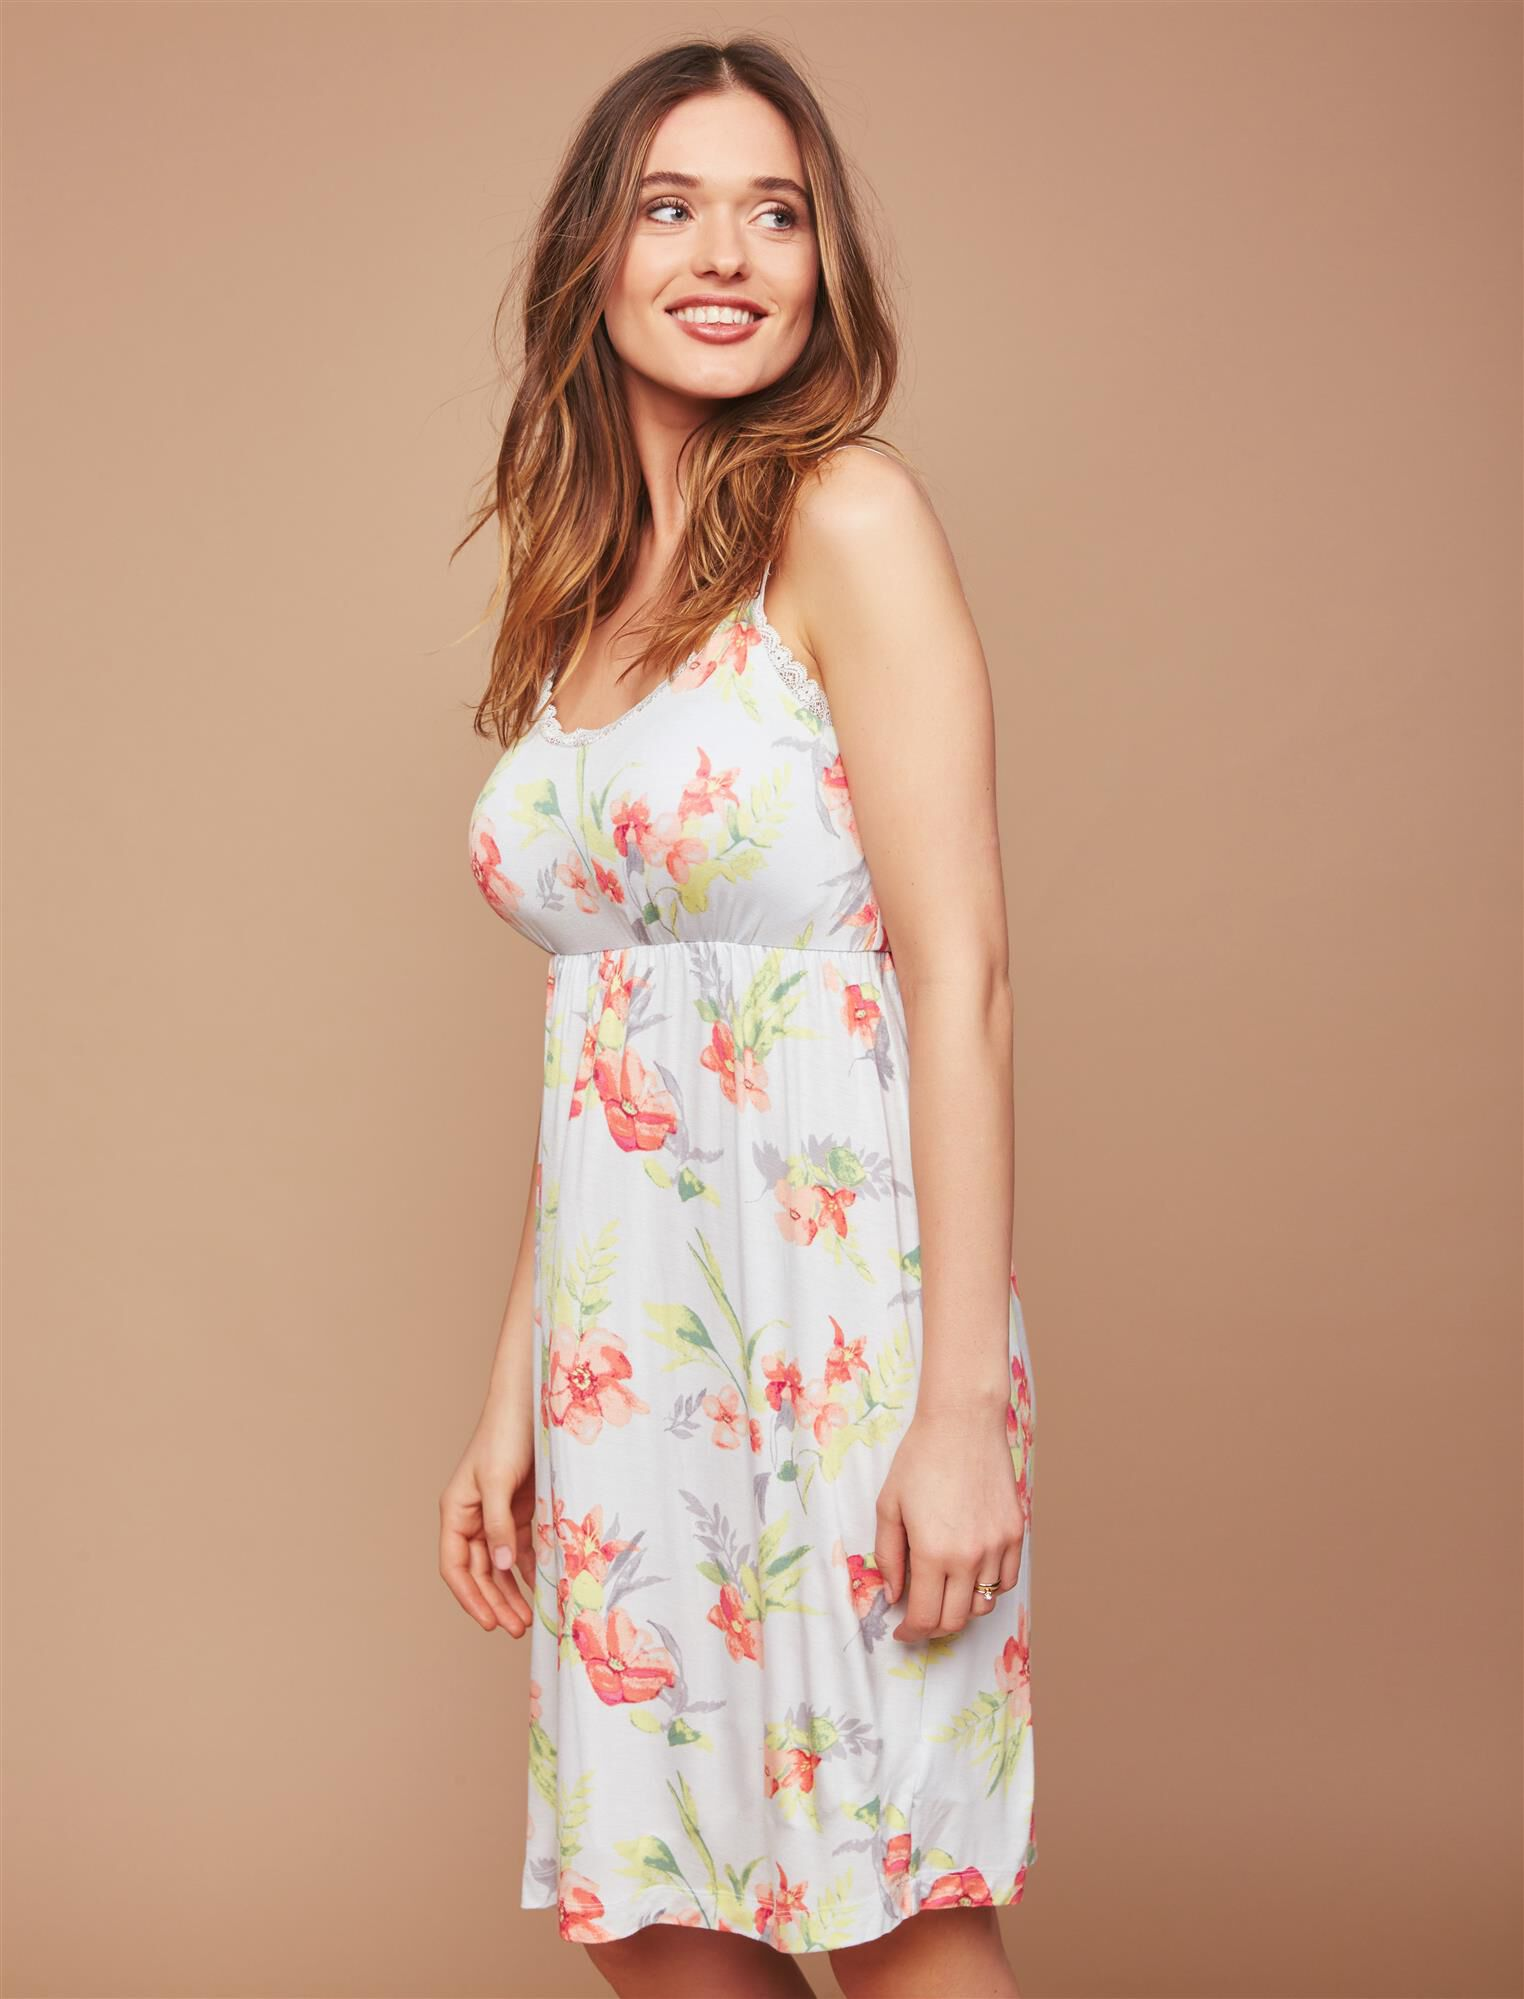 Bump in the Night Nursing Nightgown- Tropical Floral